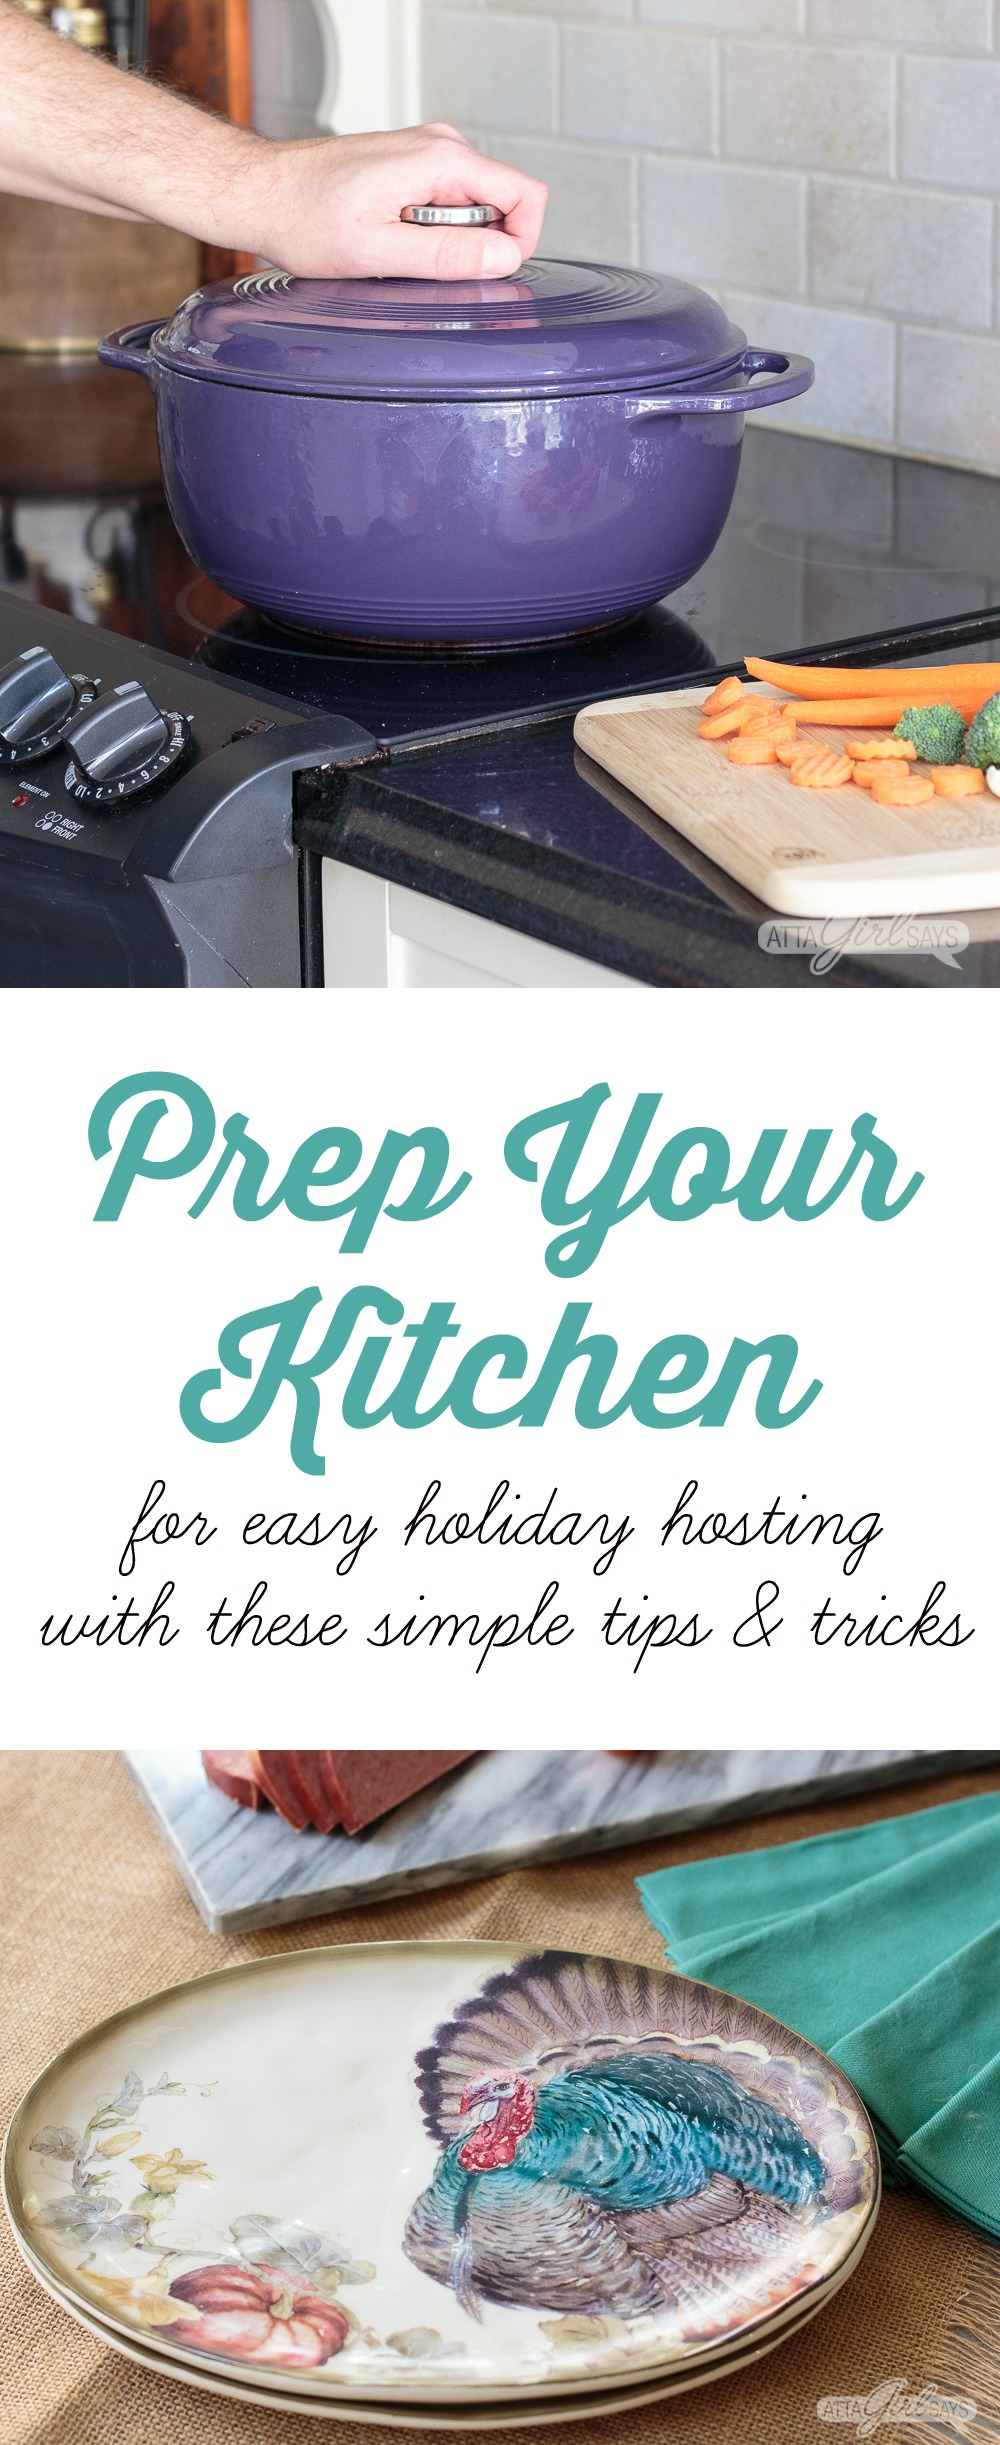 Prep your kitchen for easy holiday hosting with these simple tips and tricks. #sponsored